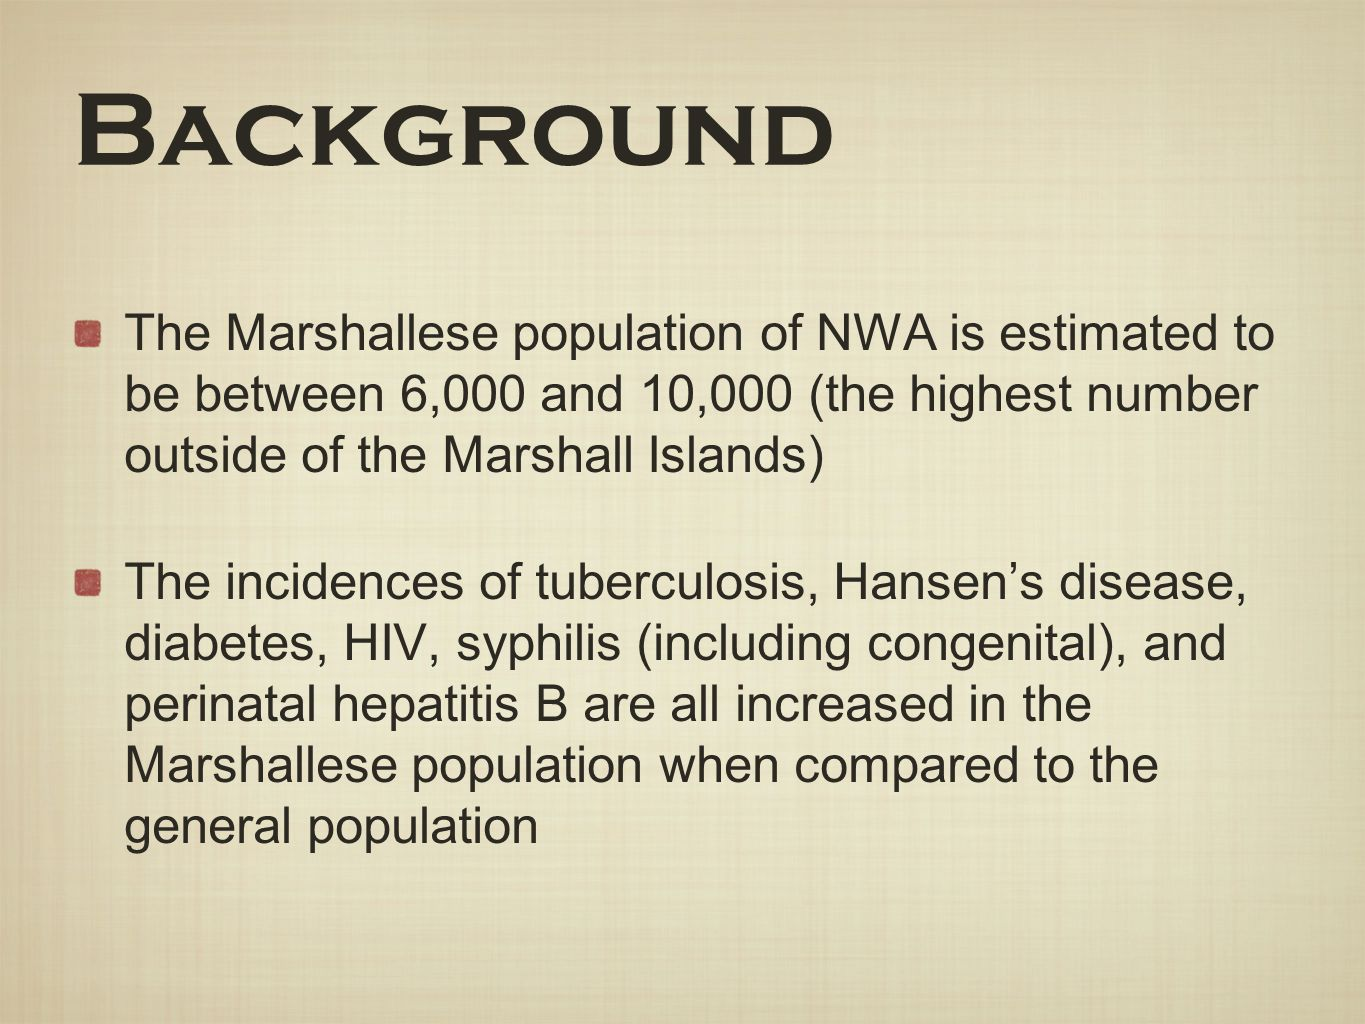 Background The Marshallese population of NWA is estimated to be between 6,000 and 10,000 (the highest number outside of the Marshall Islands)